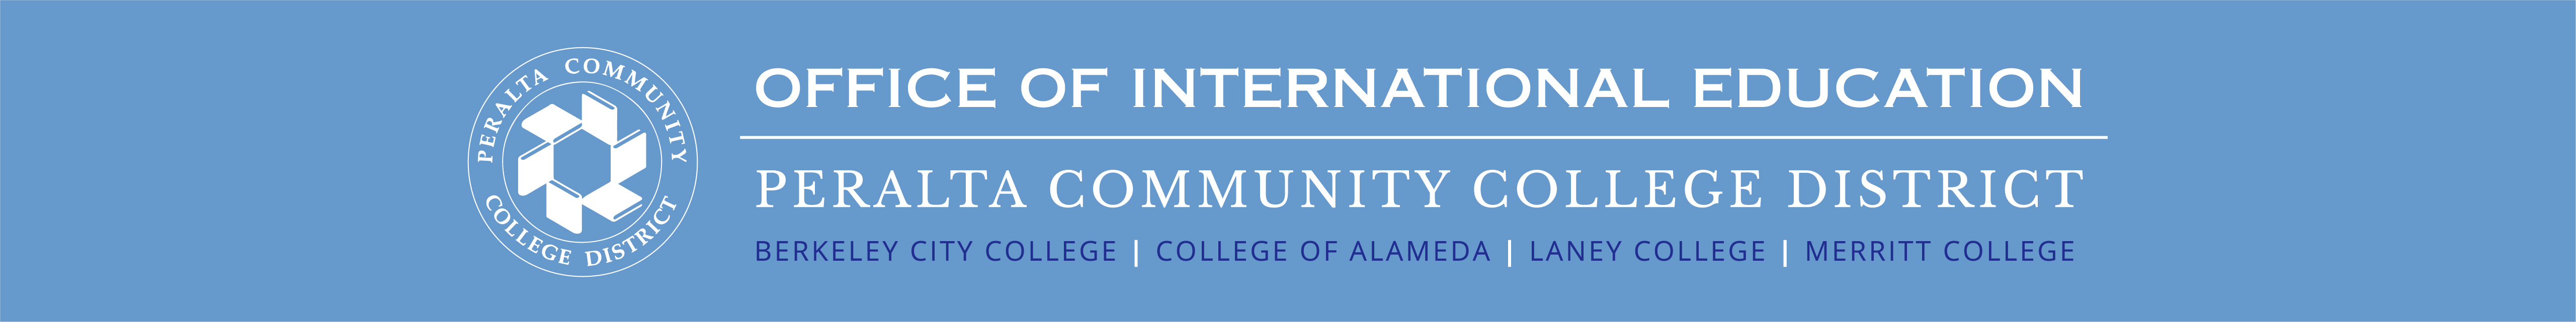 Office of International Education - Peralta Community College District